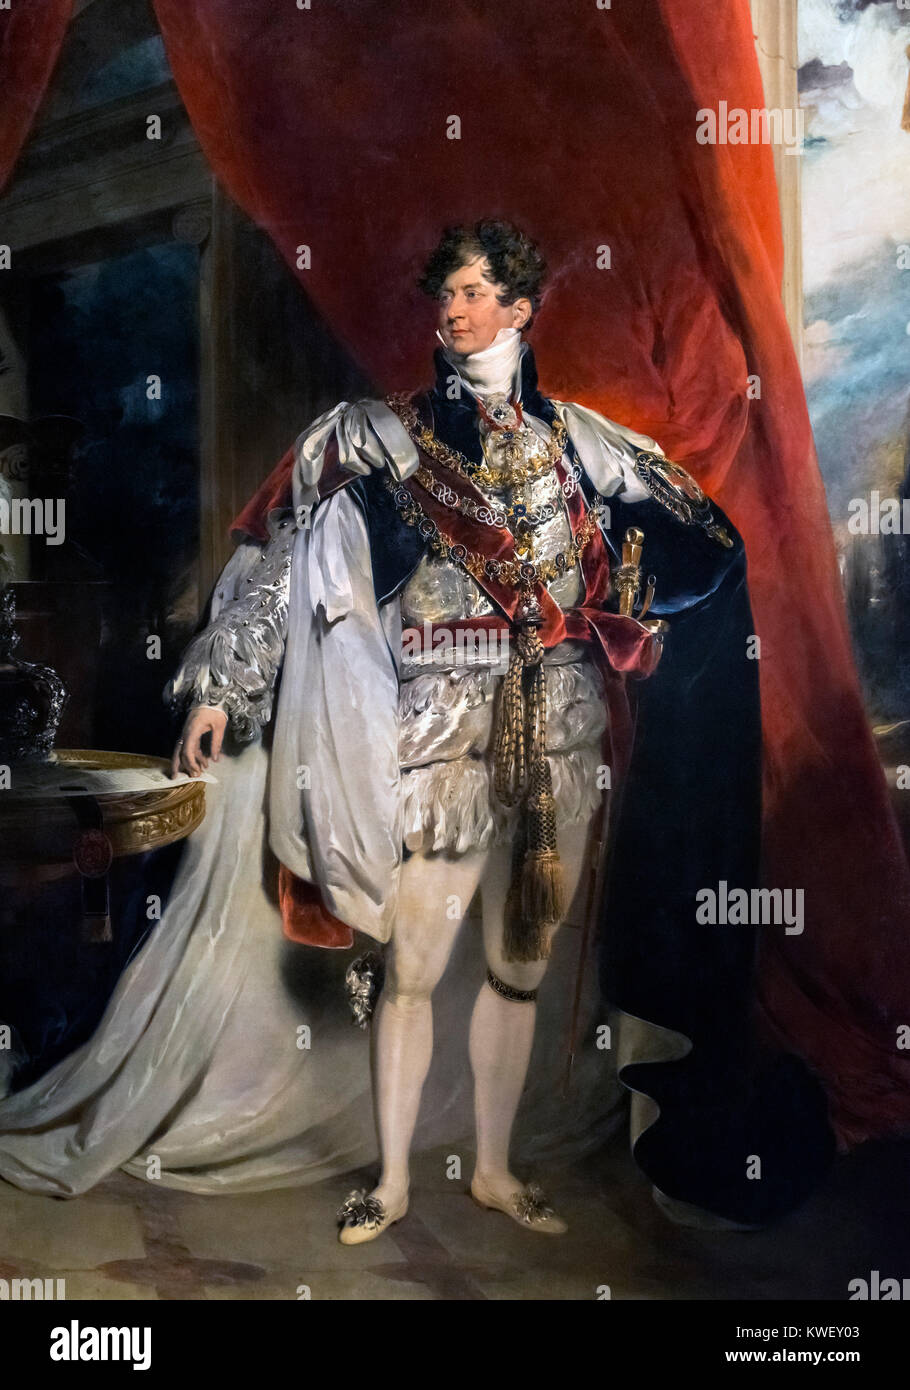 George IV. Portrait of King George IV by Sir Thomas Lawrence, oil on canvas, 1816 - Stock Image